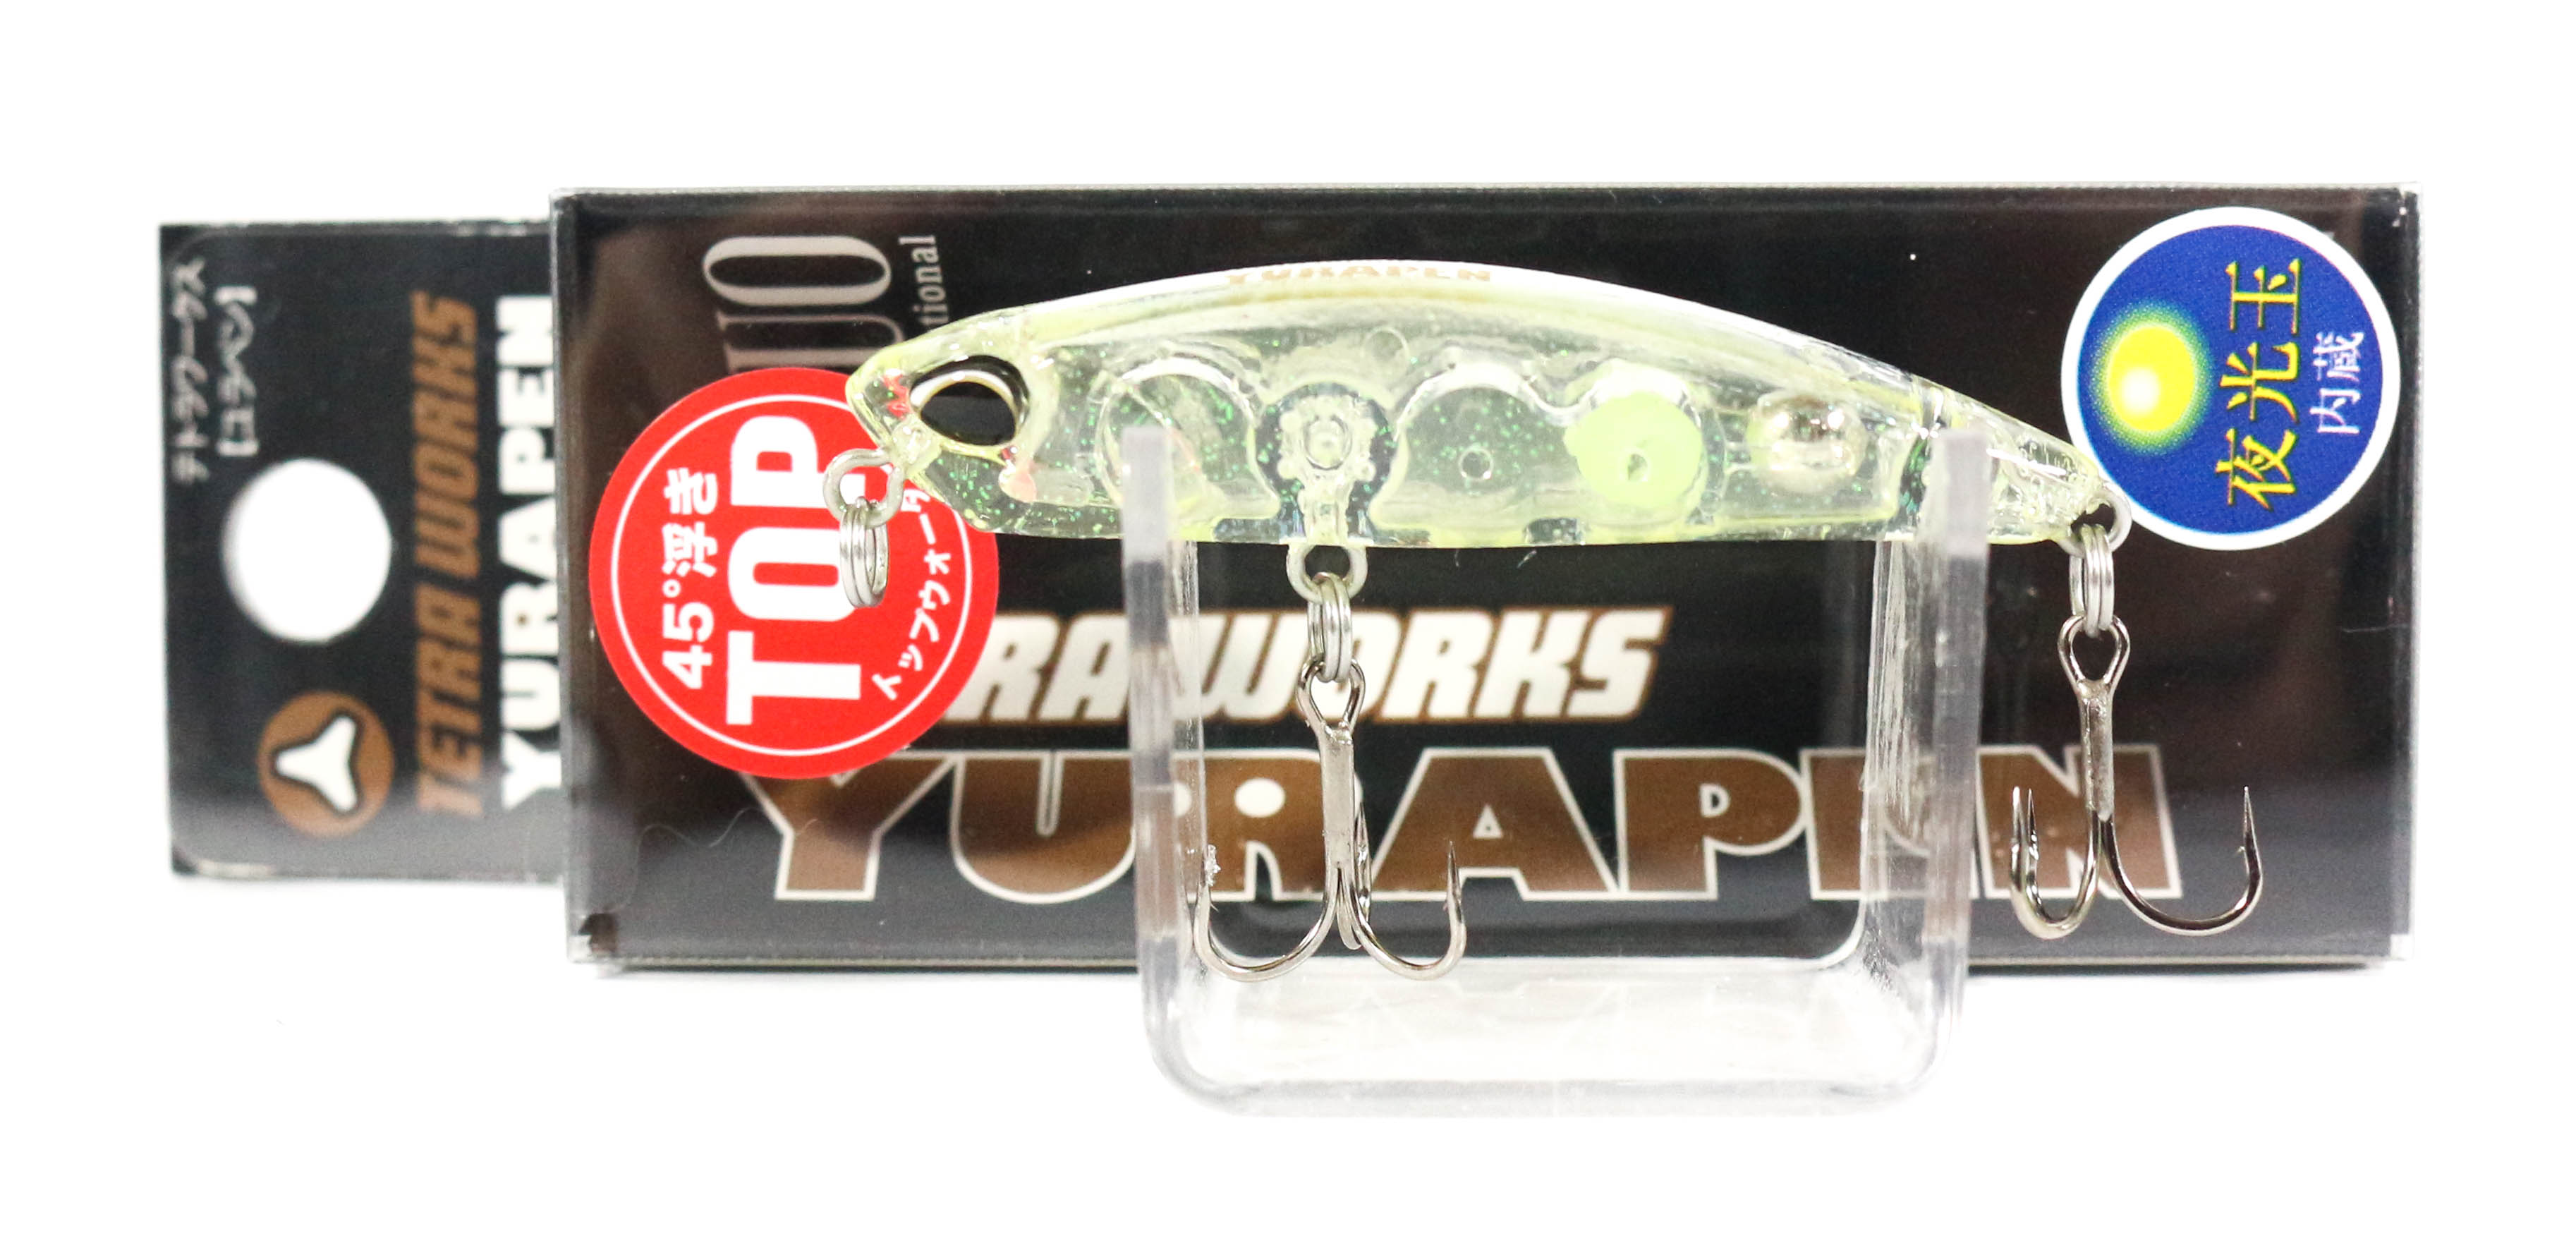 Duo Tetra Works Yurapen 48 mm Floating Lure CCC0364 (4973)